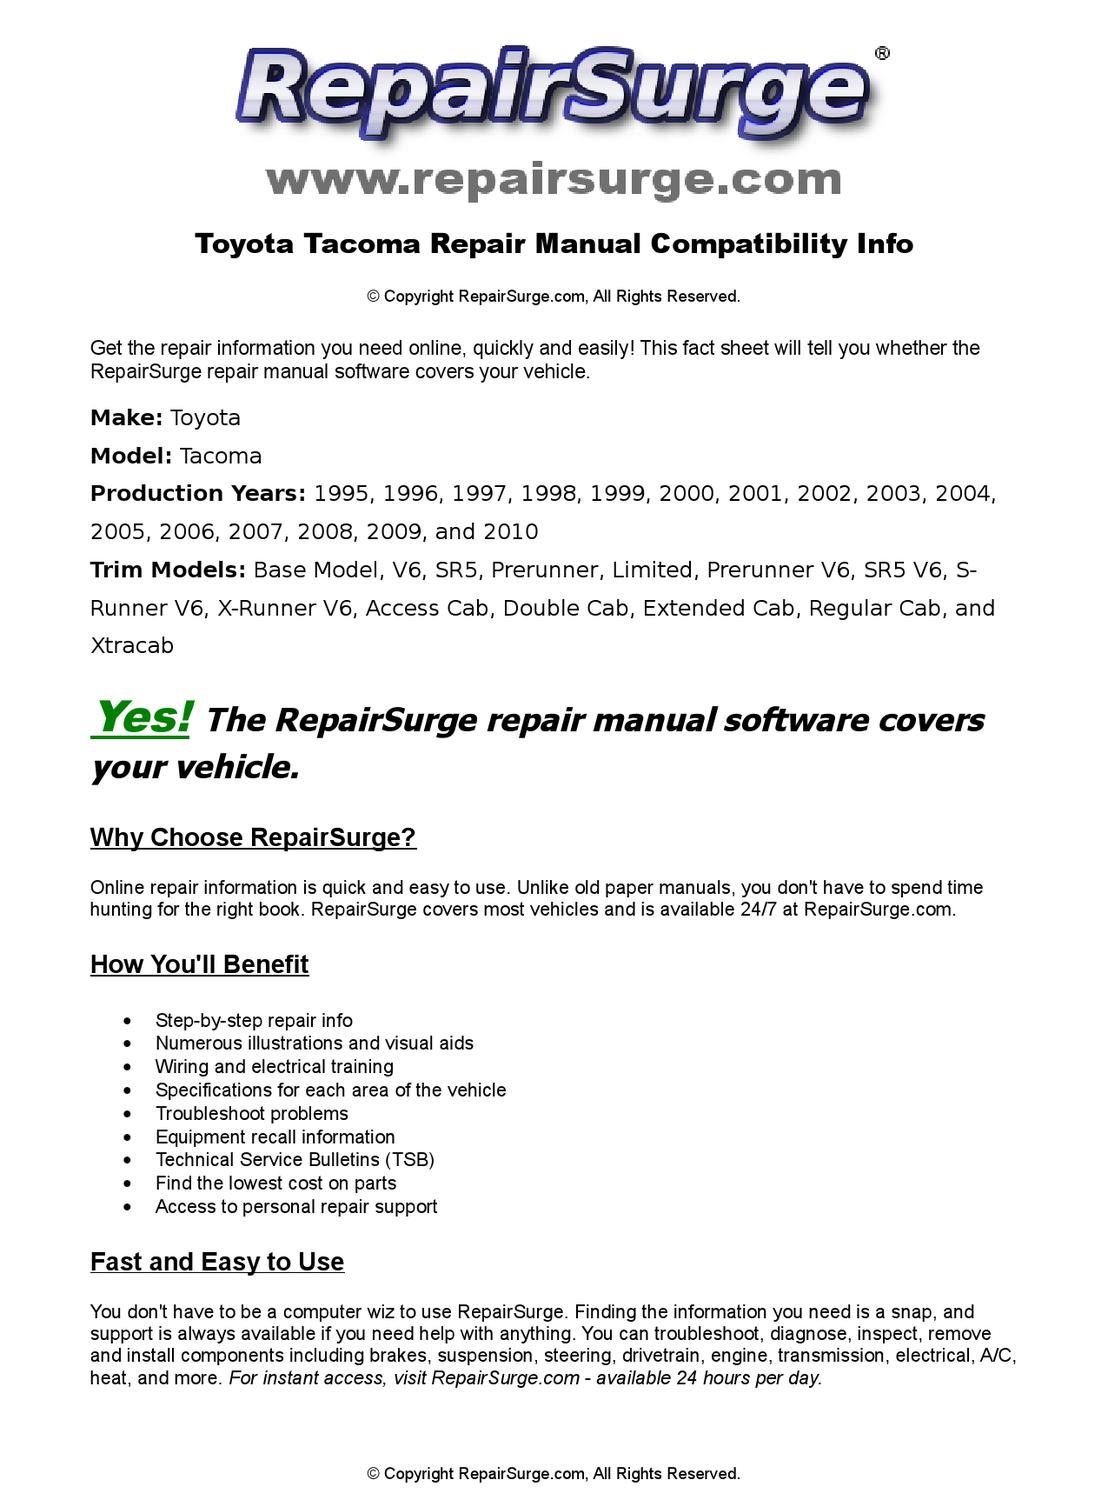 Toyota Tacoma Online Repair Manual For 1995, 1996, 1997, 1998, 1999, 2000,  2001, 2002, 2003, 2004, 2 by RepairSurge - issuu